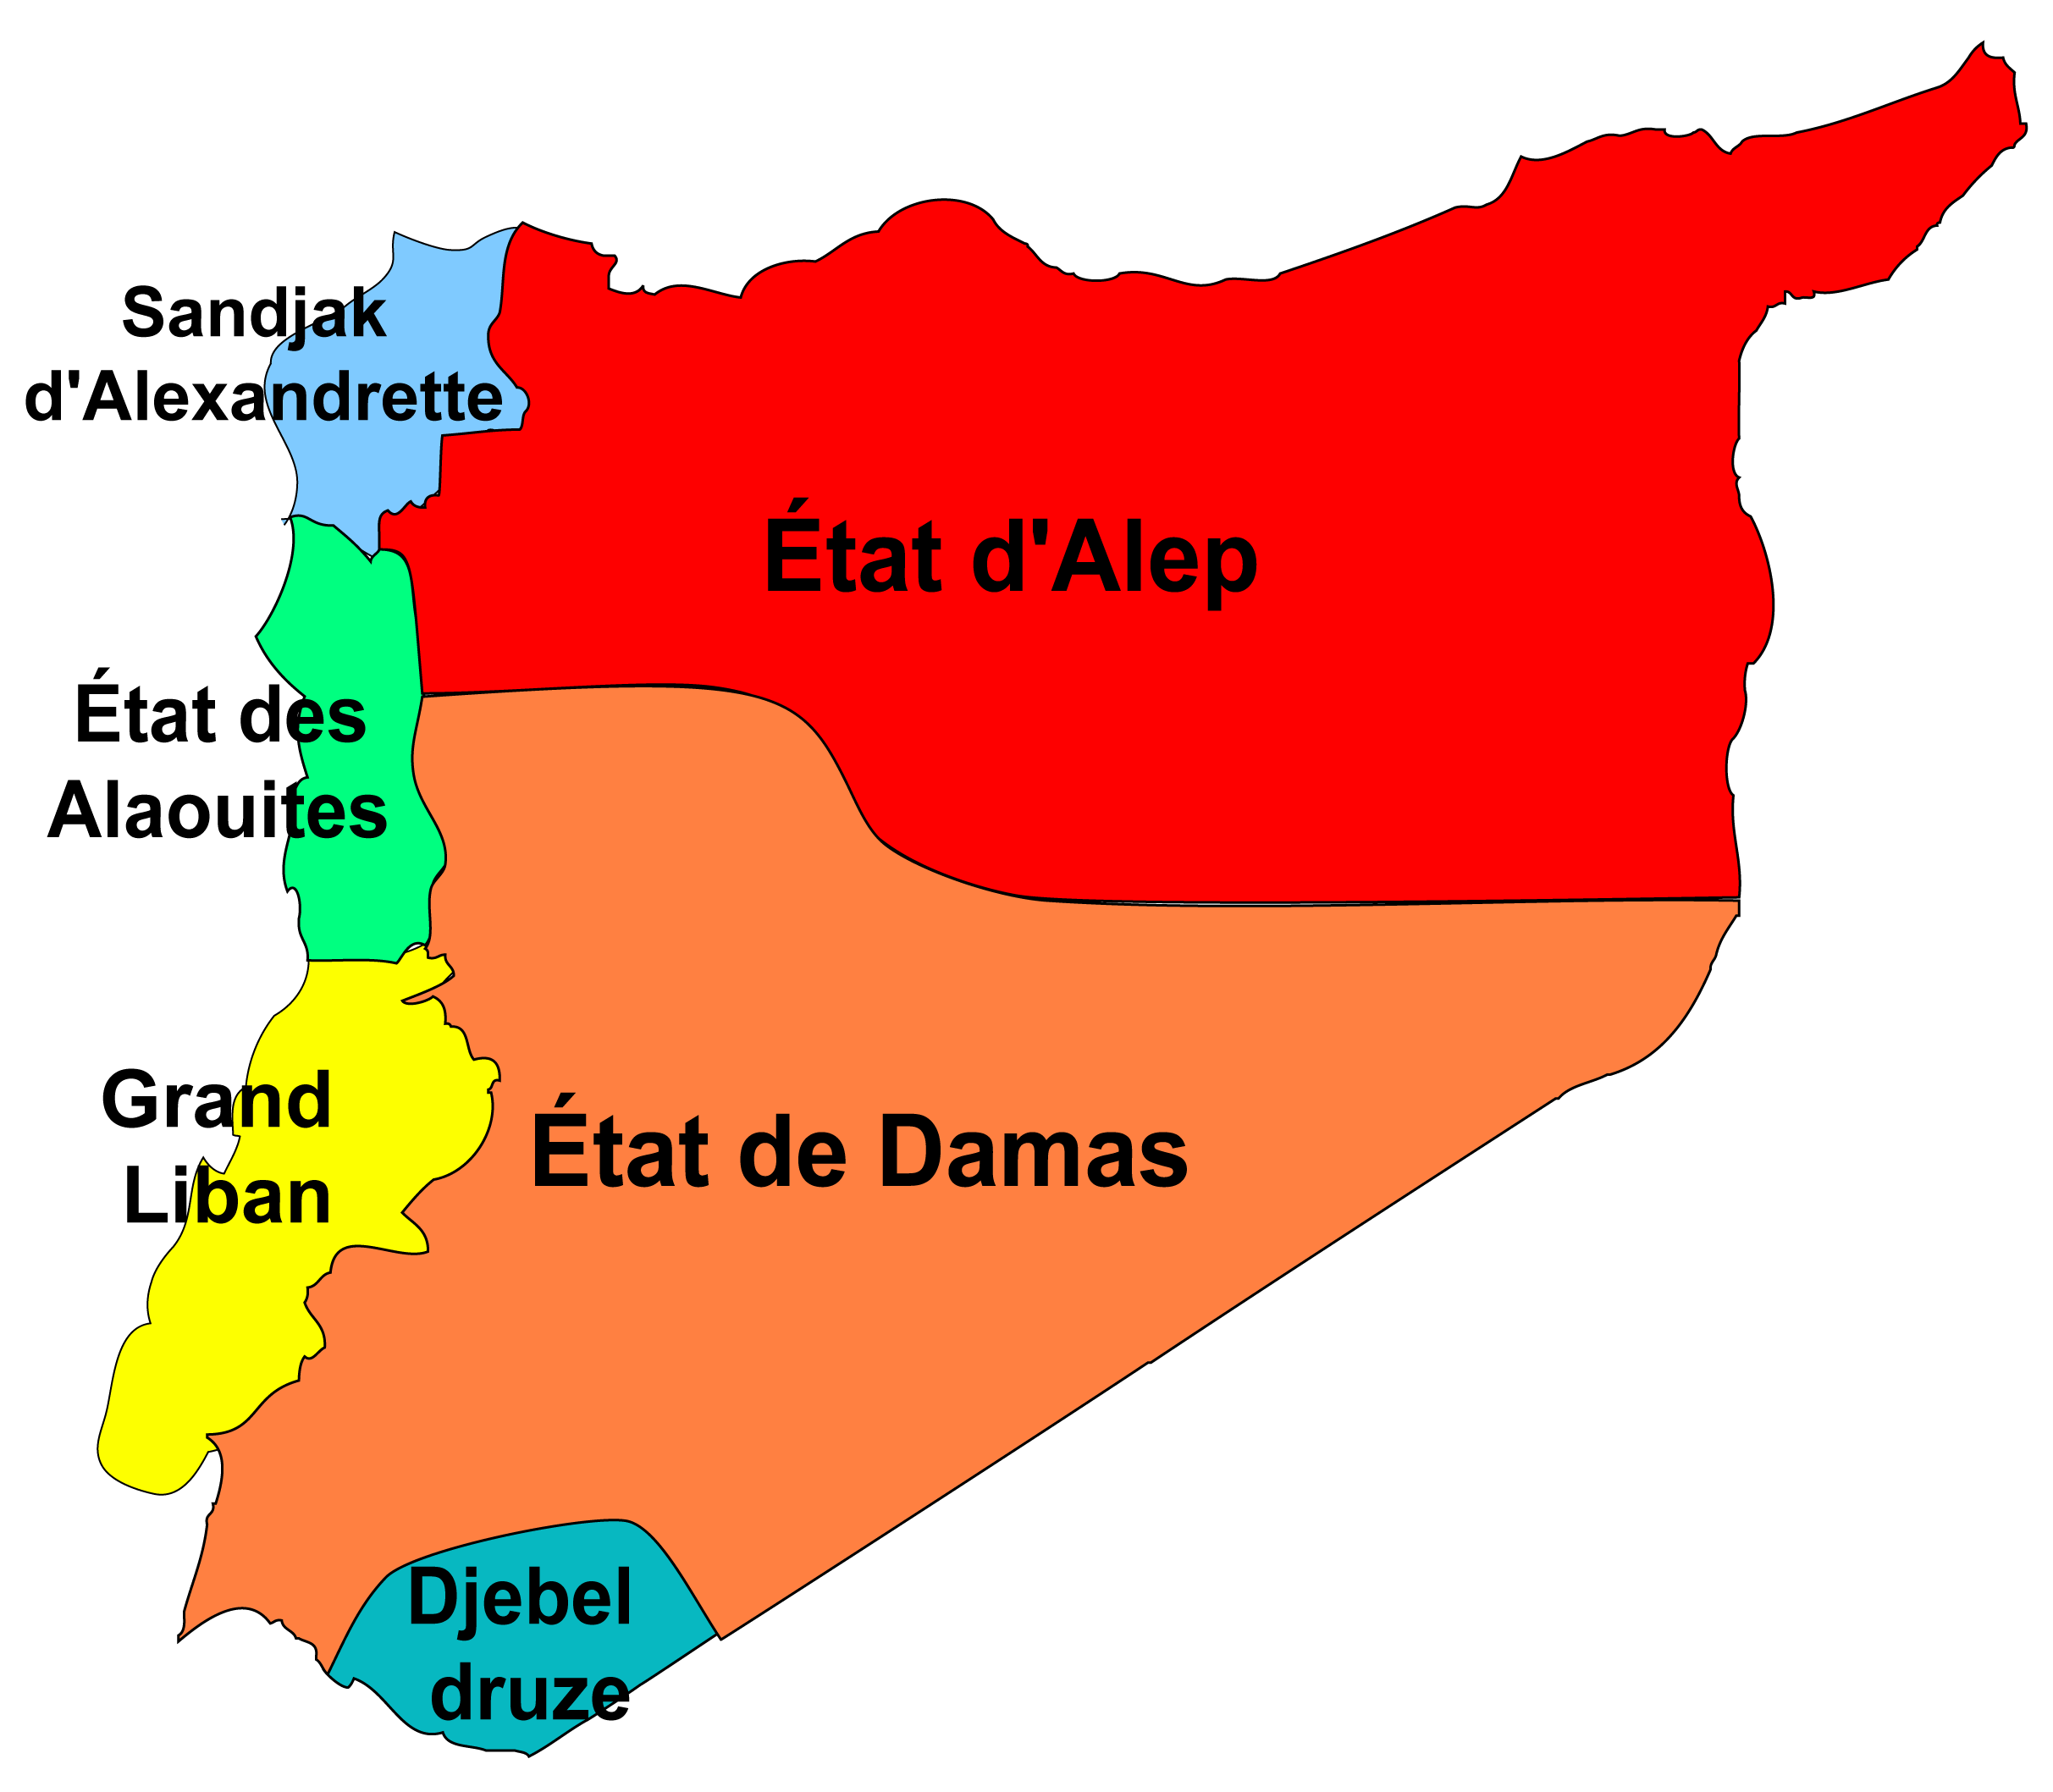 http://upload.wikimedia.org/wikipedia/commons/9/98/Mandat-de-syrie.png